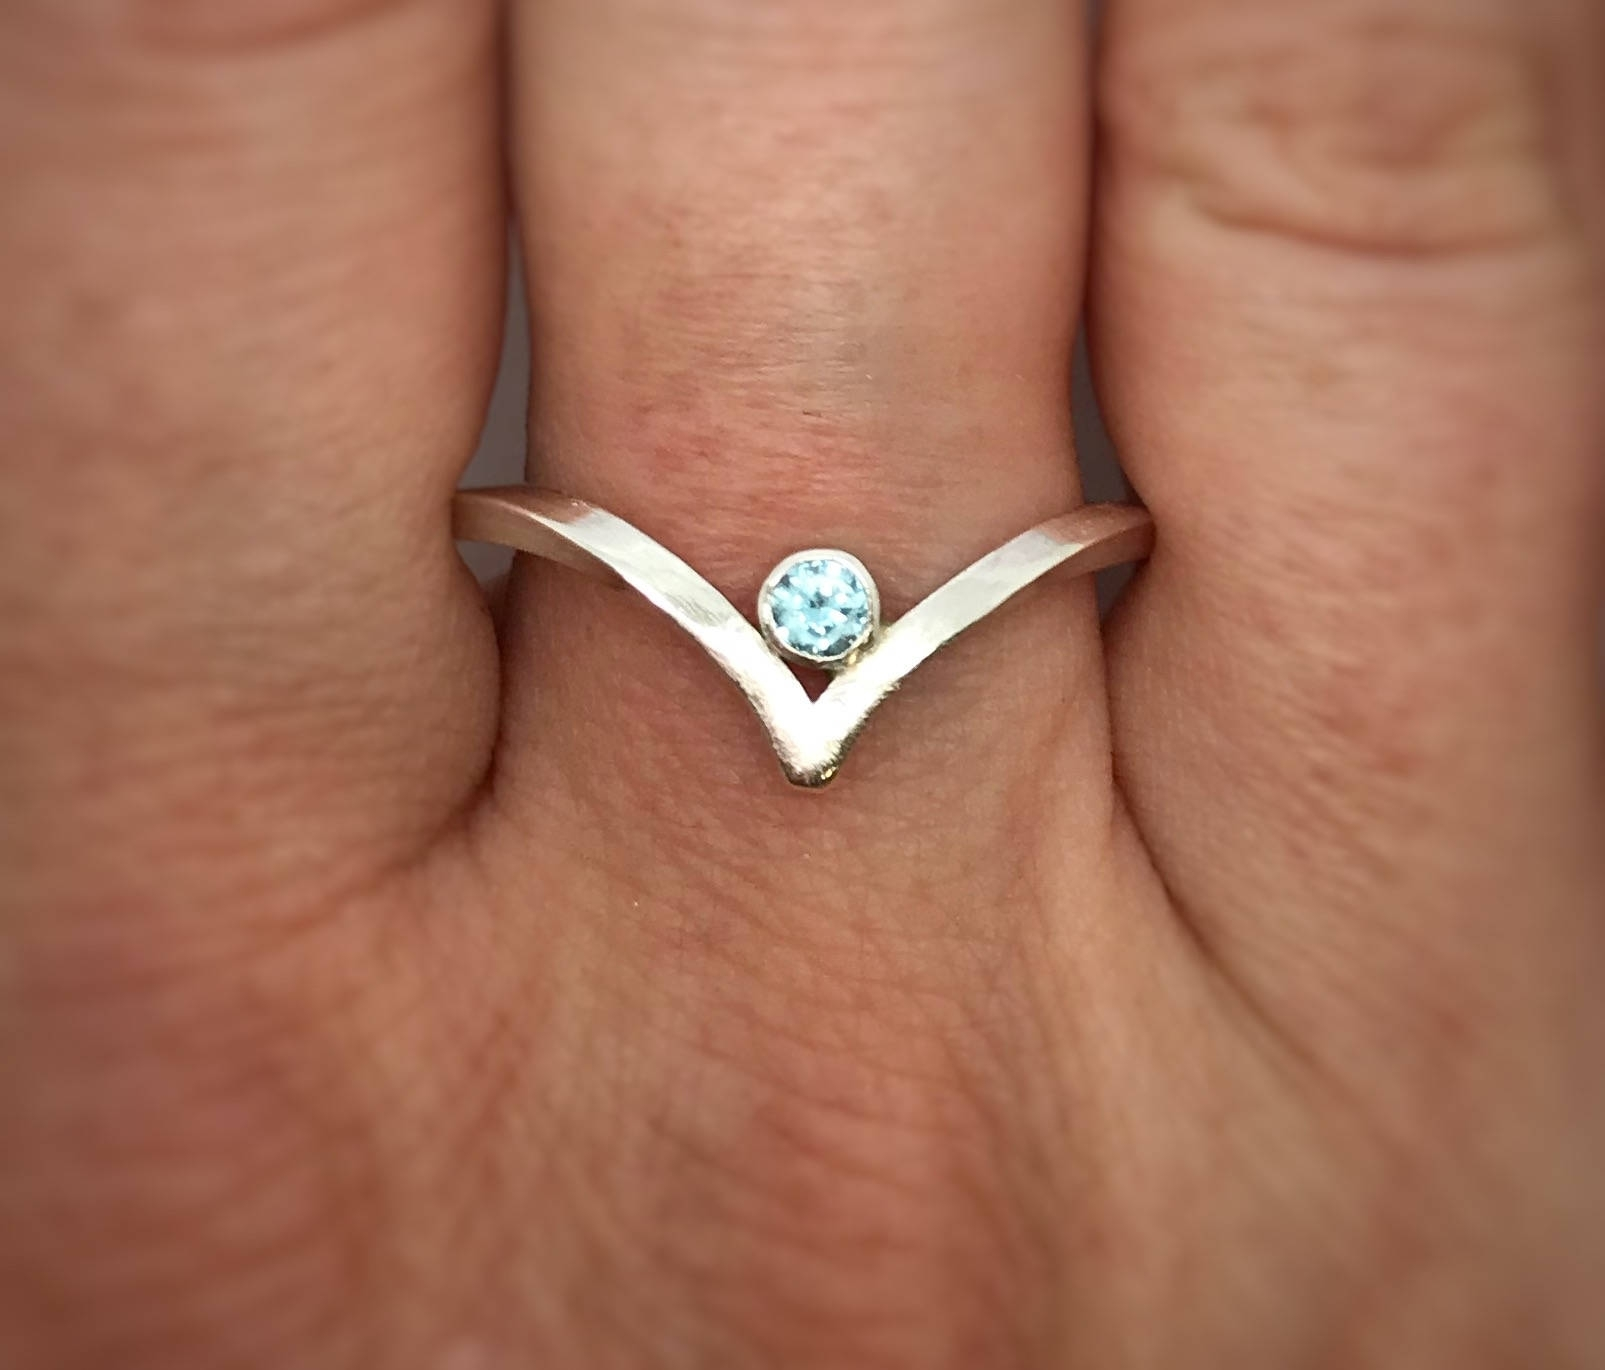 Engagement Ring – Chevron Ring – Silver V Ring – Stacking Ring Intended For 2017 Silver Chevron Rings (View 13 of 15)